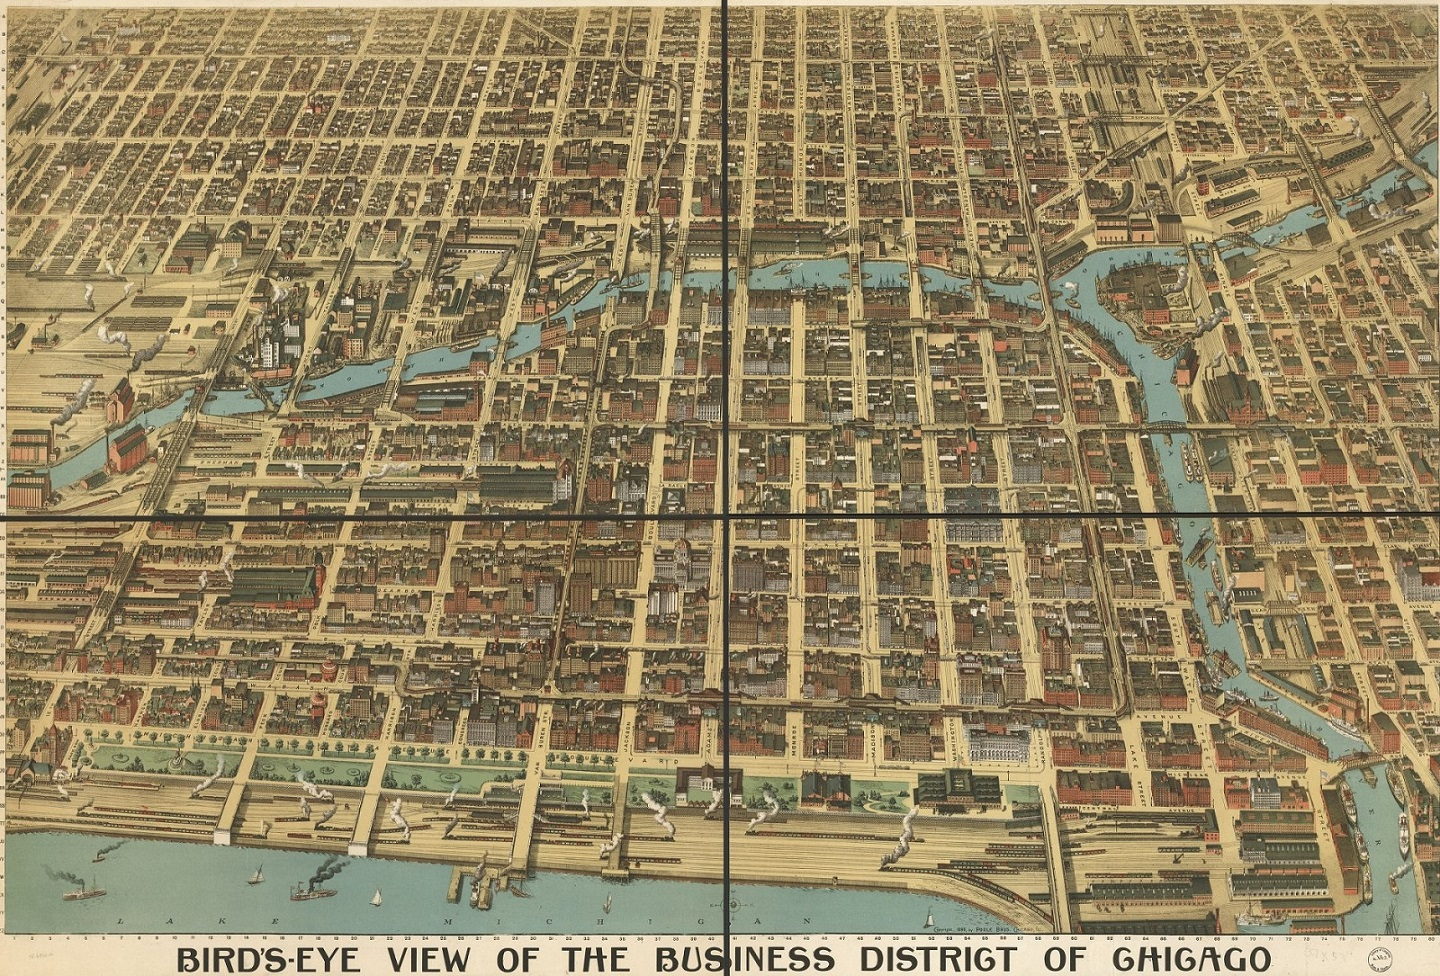 1898 Drawn Picture of Chicago Business District